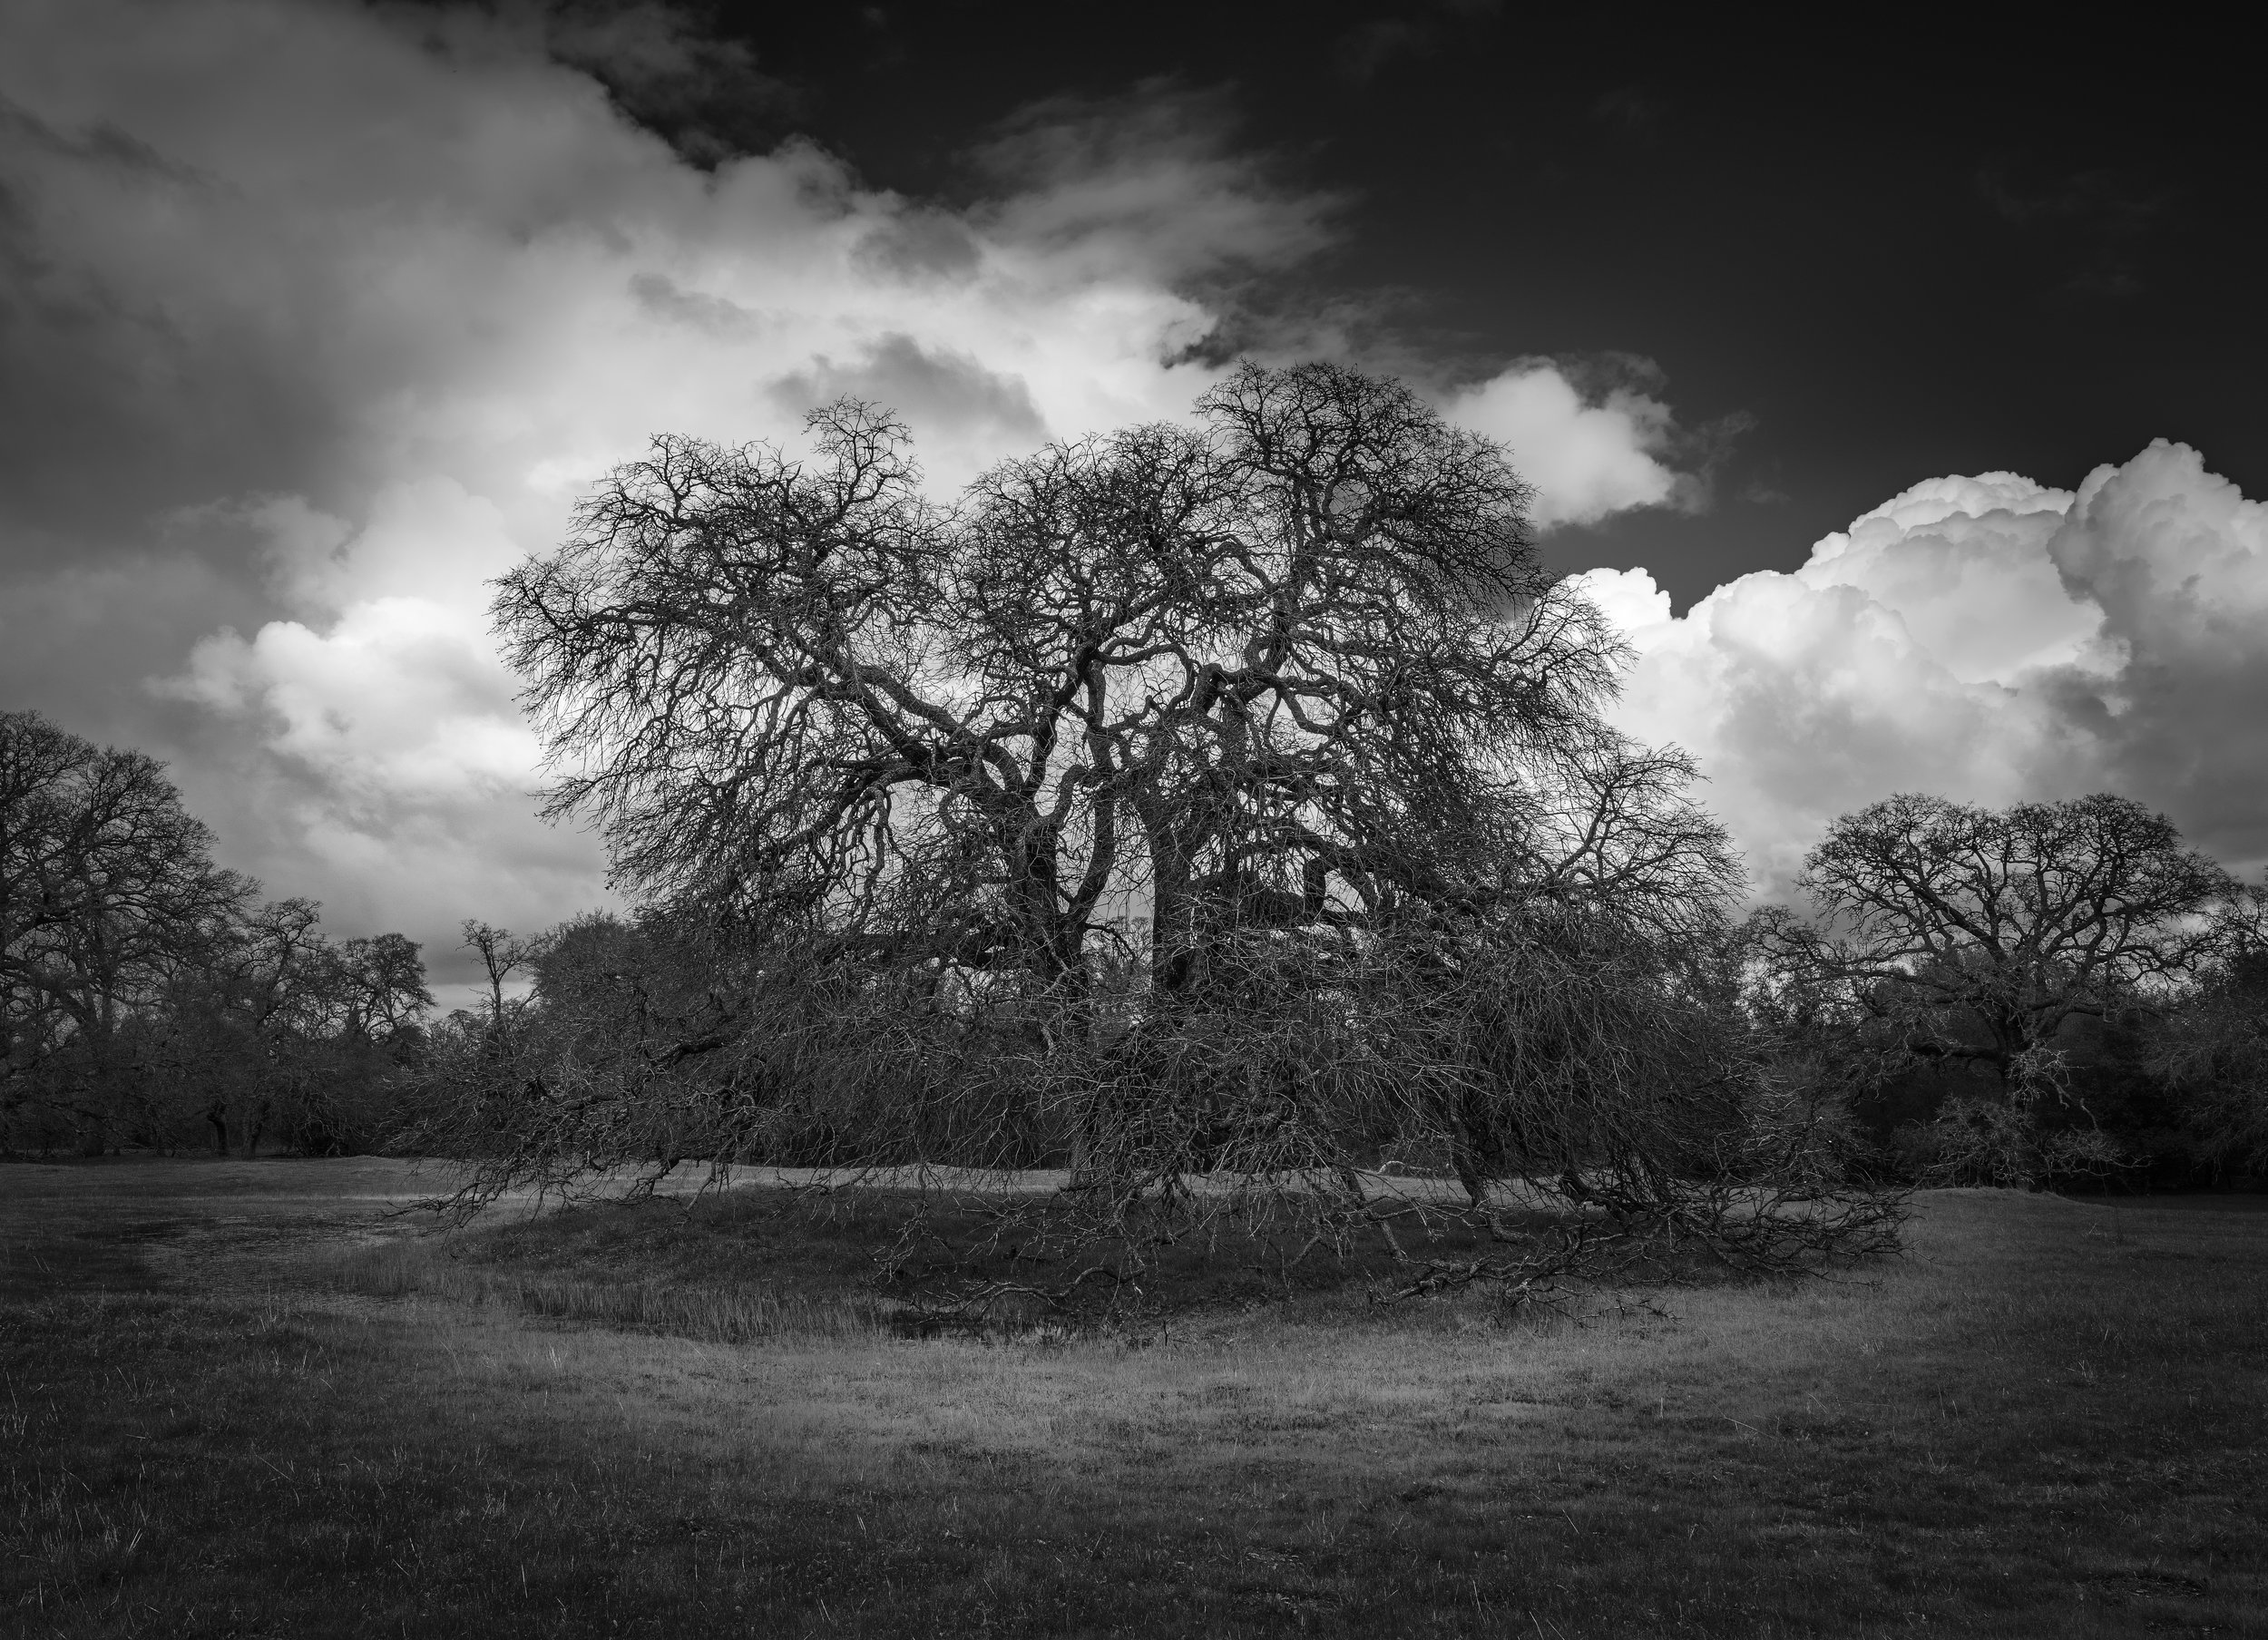 The Old Oak at Branch Creek, Study 3